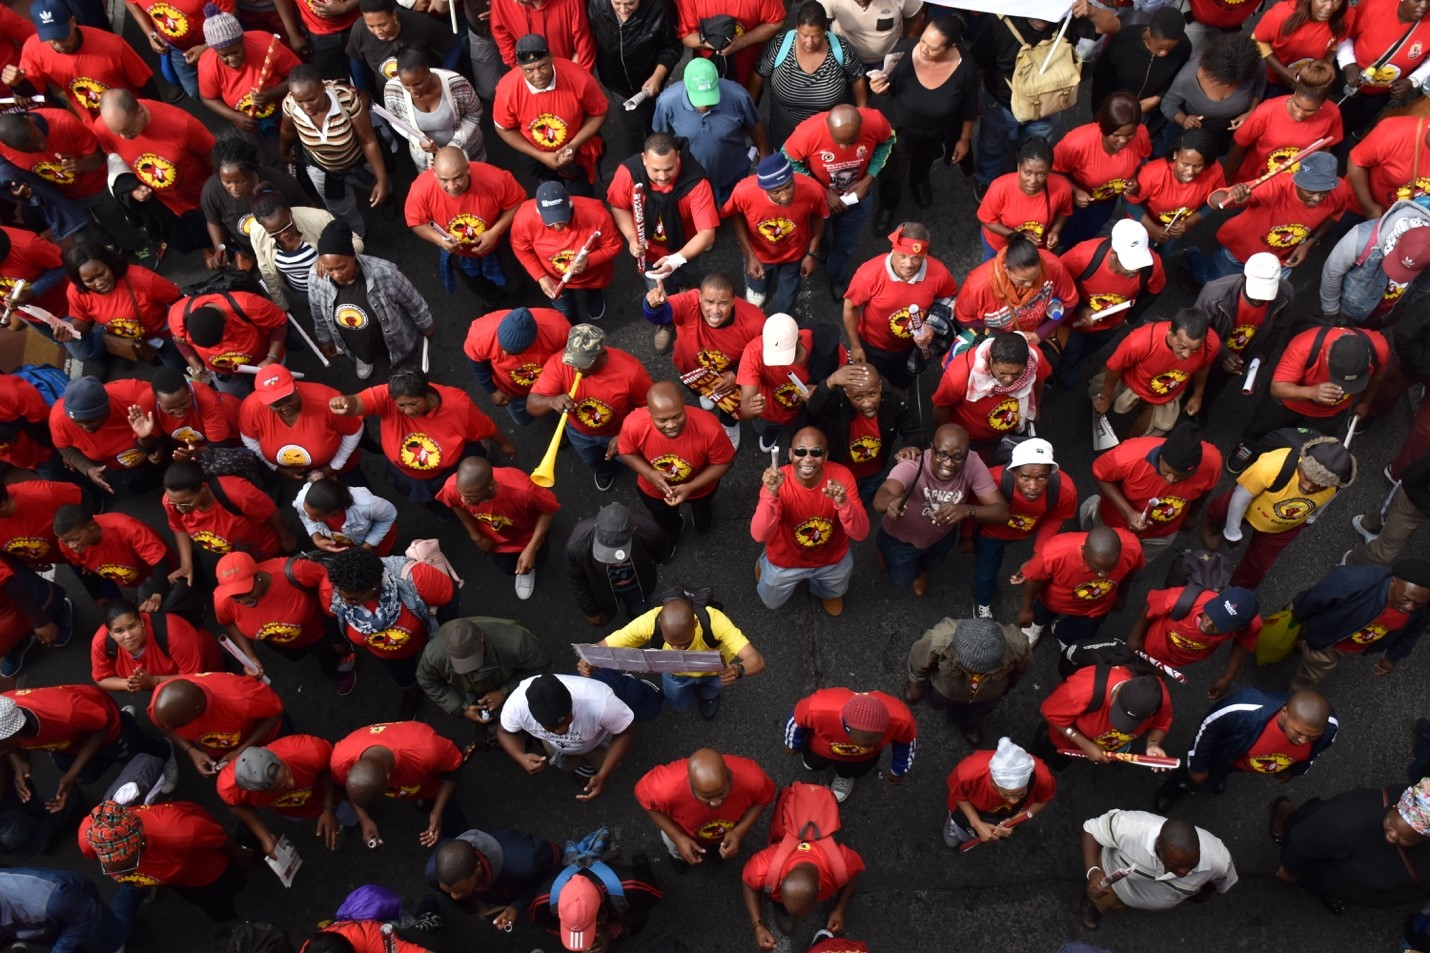 South African Federation of Trade Unions March for Minimum Wage (April 25th, 2018). Photo courtesy of Adam Yates